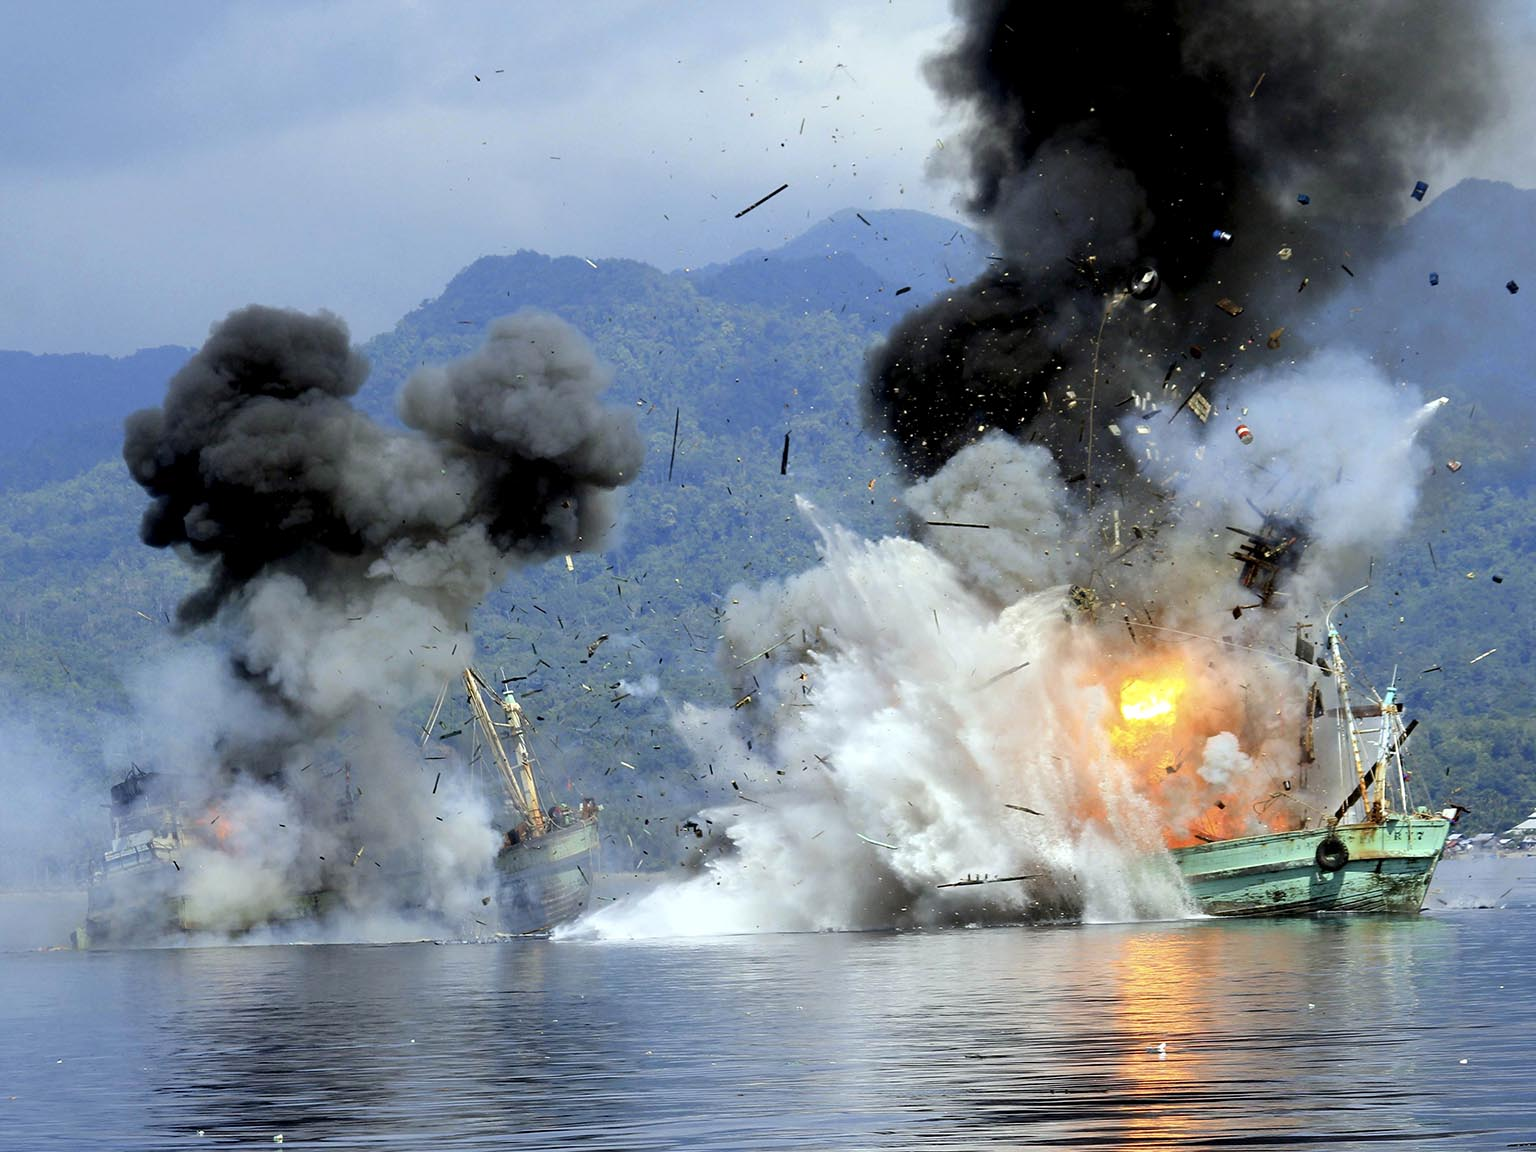 Foreign flagged fishing boats registered in Papua New Guinea are destroyed by the Indonesian Navy after they were seized earlier for supposedly illegal fishing off the coast of Ambon